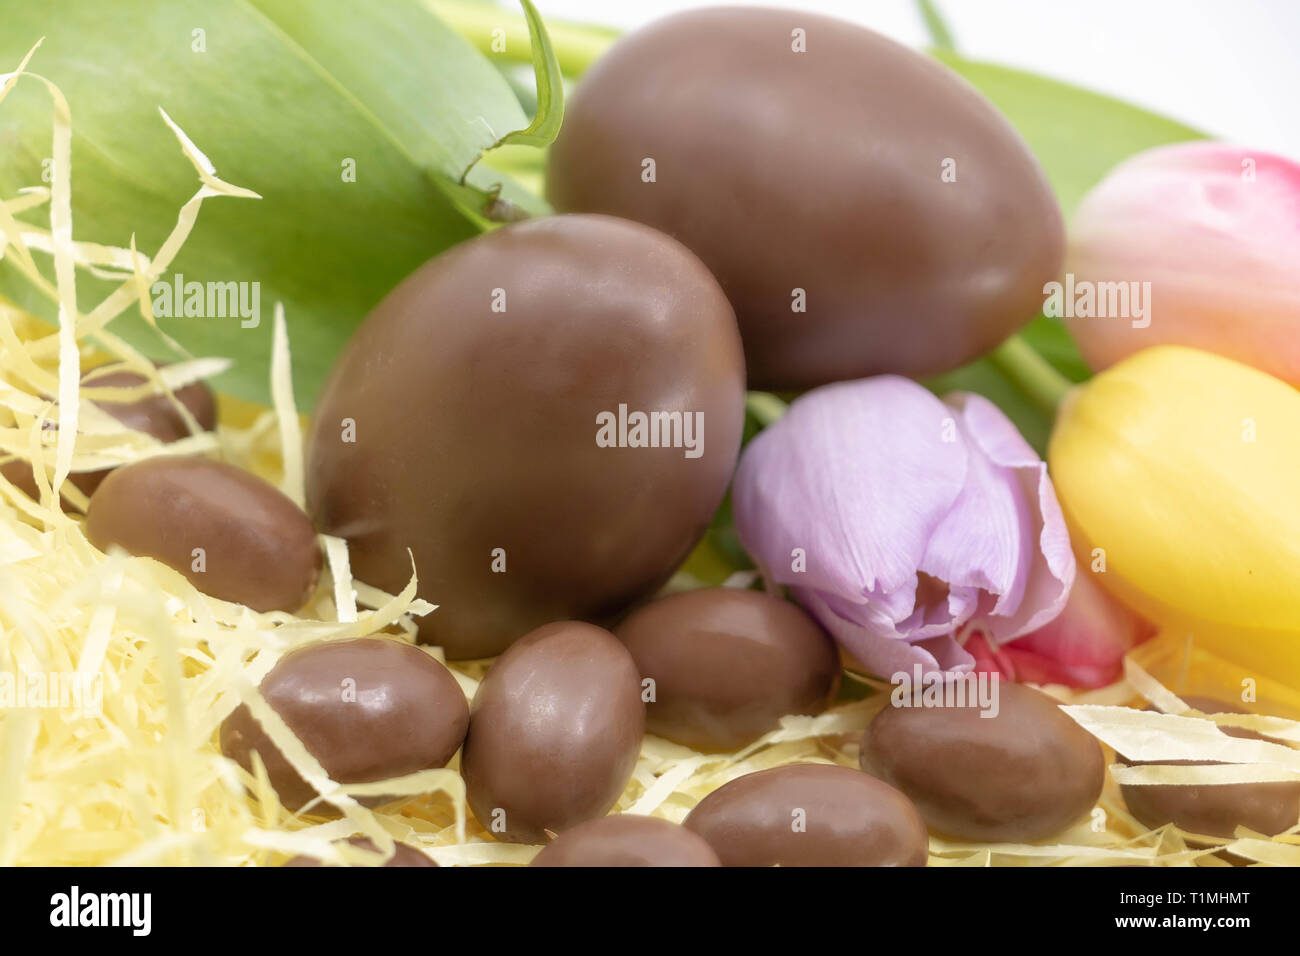 Shabby chic Easter with chocolate eggs and pastel tulips - Stock Image